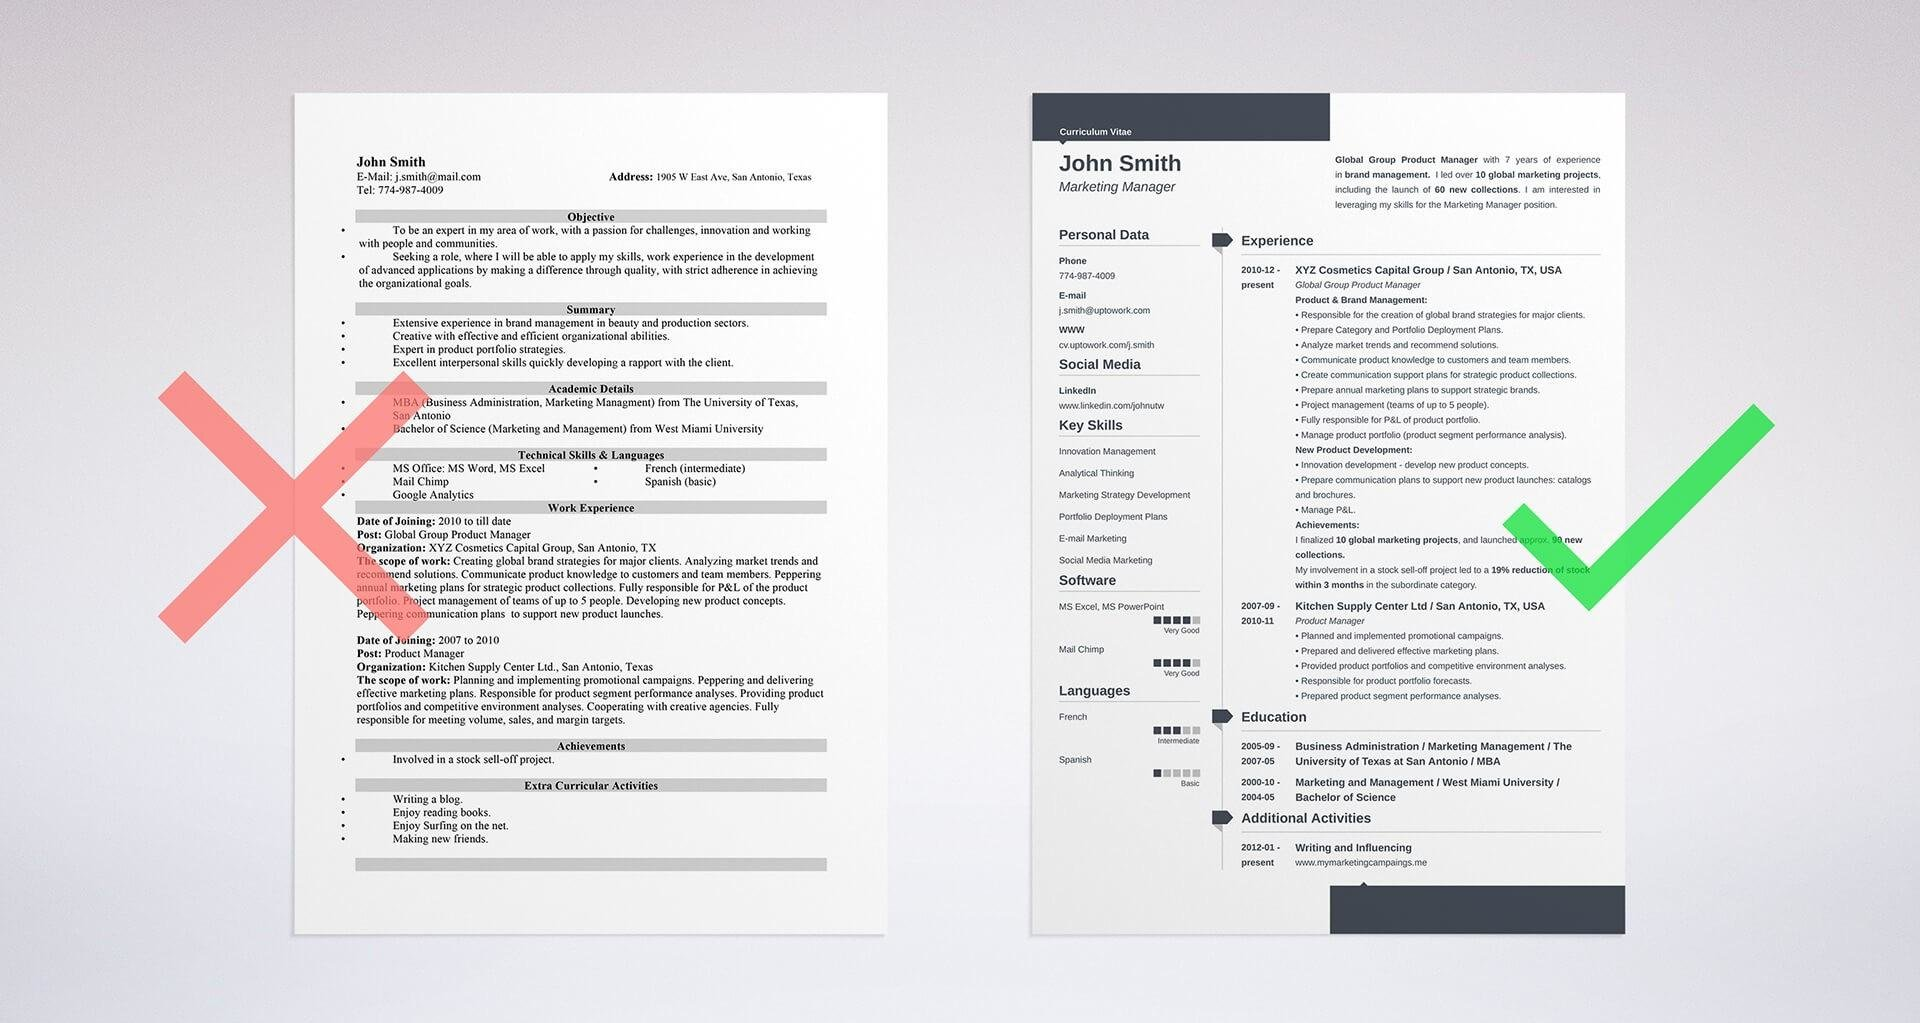 20 resume objective examples use them on your resume tips altavistaventures Gallery